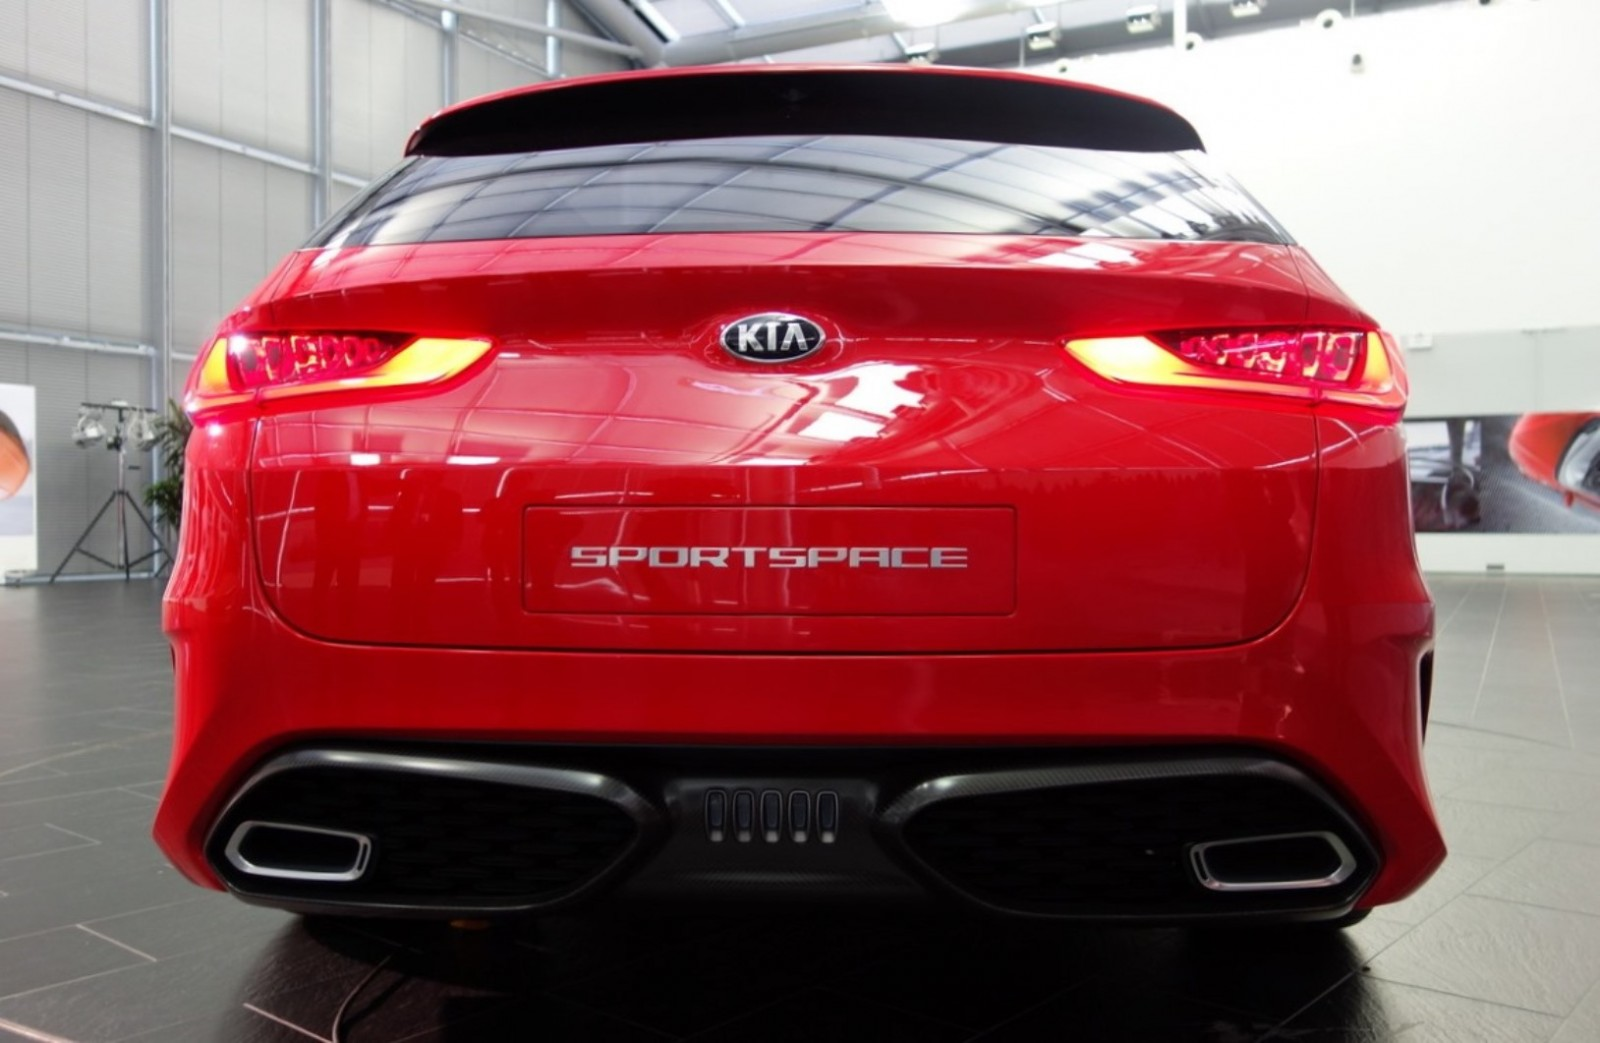 2015 Kia SPORTSPACE Concept - Latest Photos 12